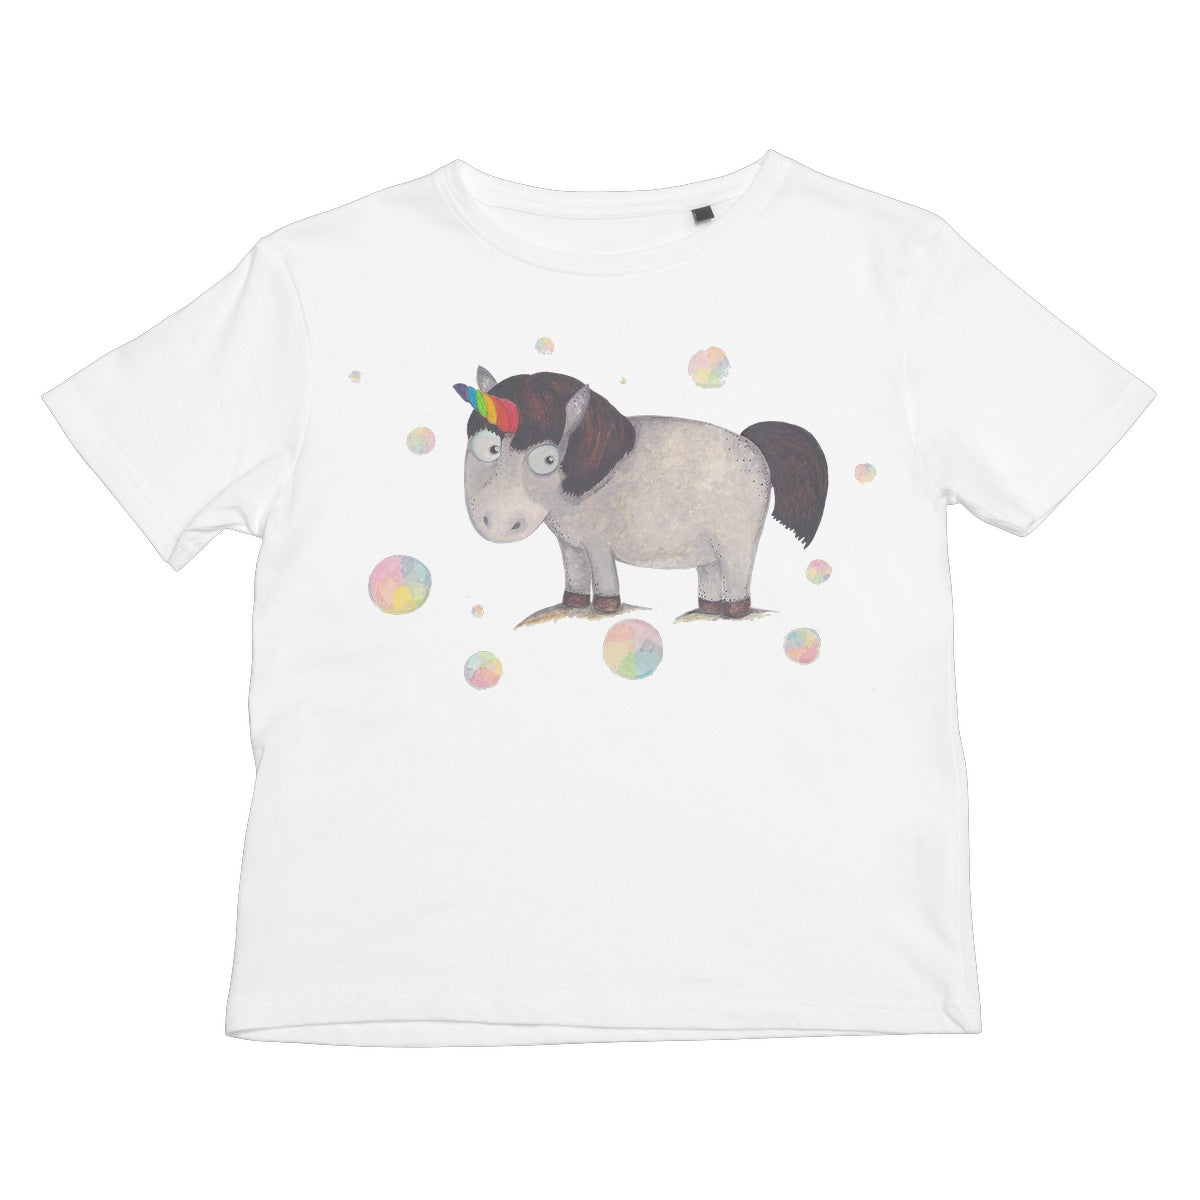 Unicorn Children's Tee